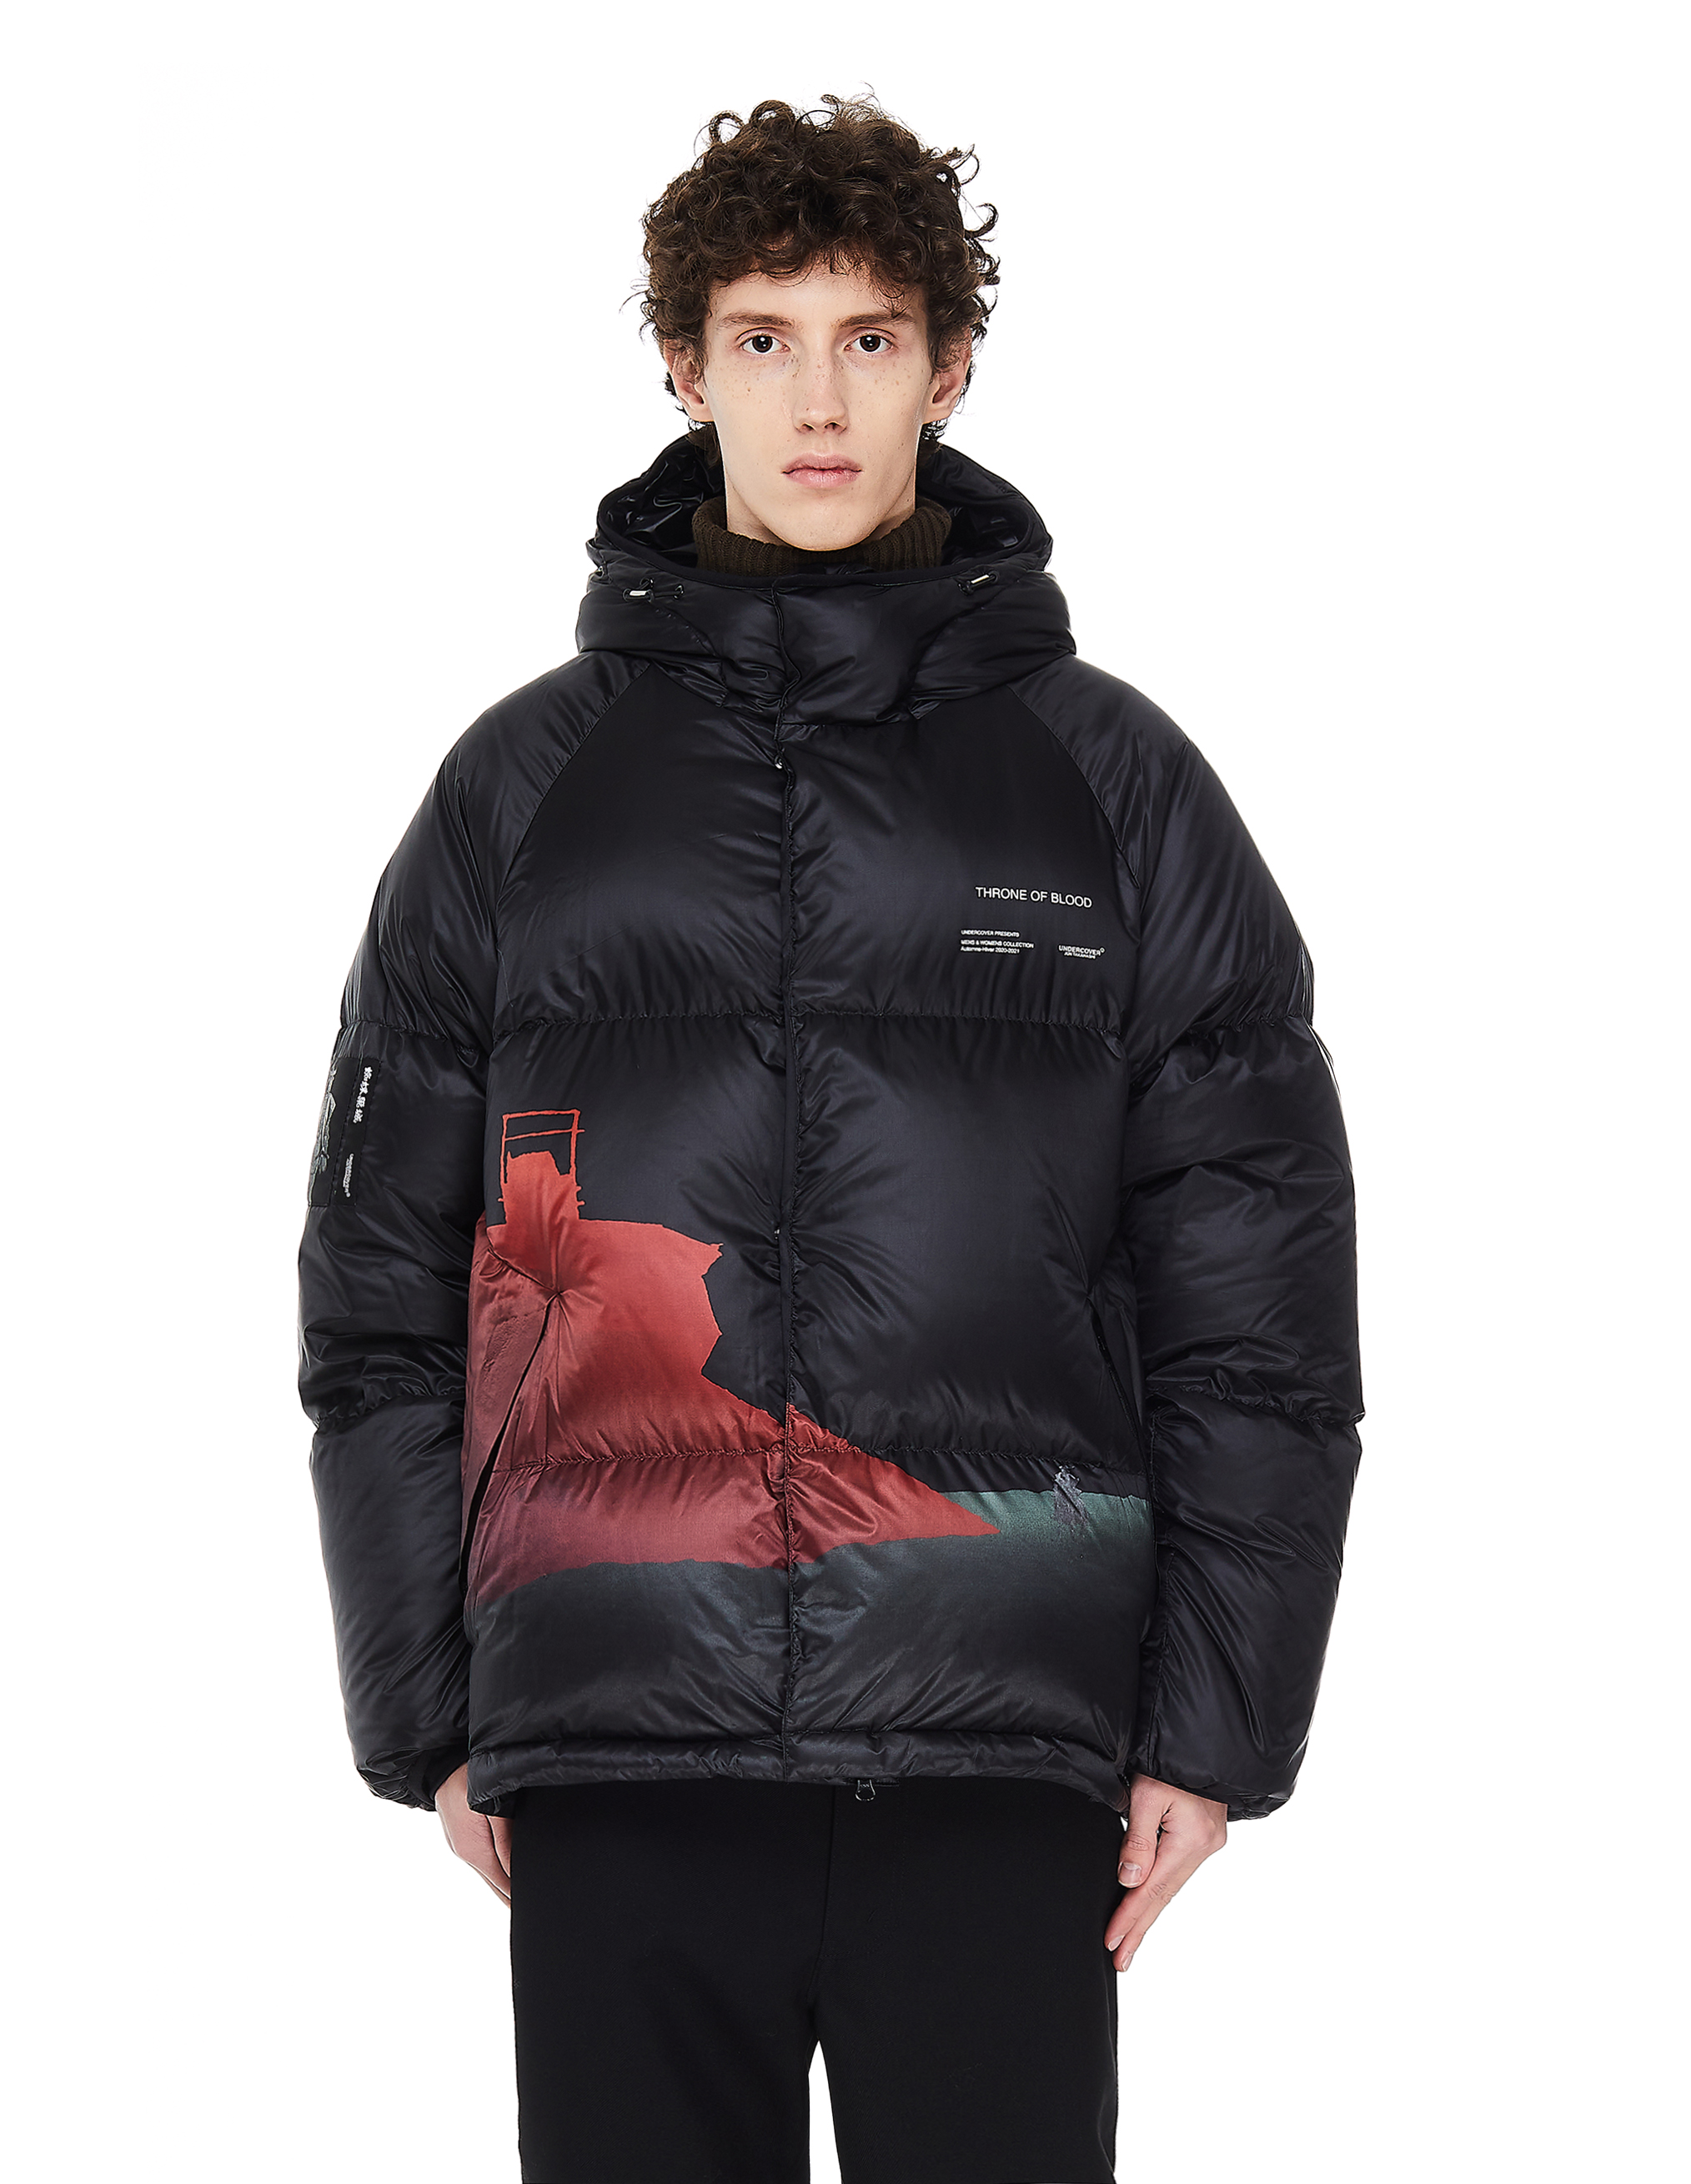 Undercover Hooded Printed Puffer Jacket